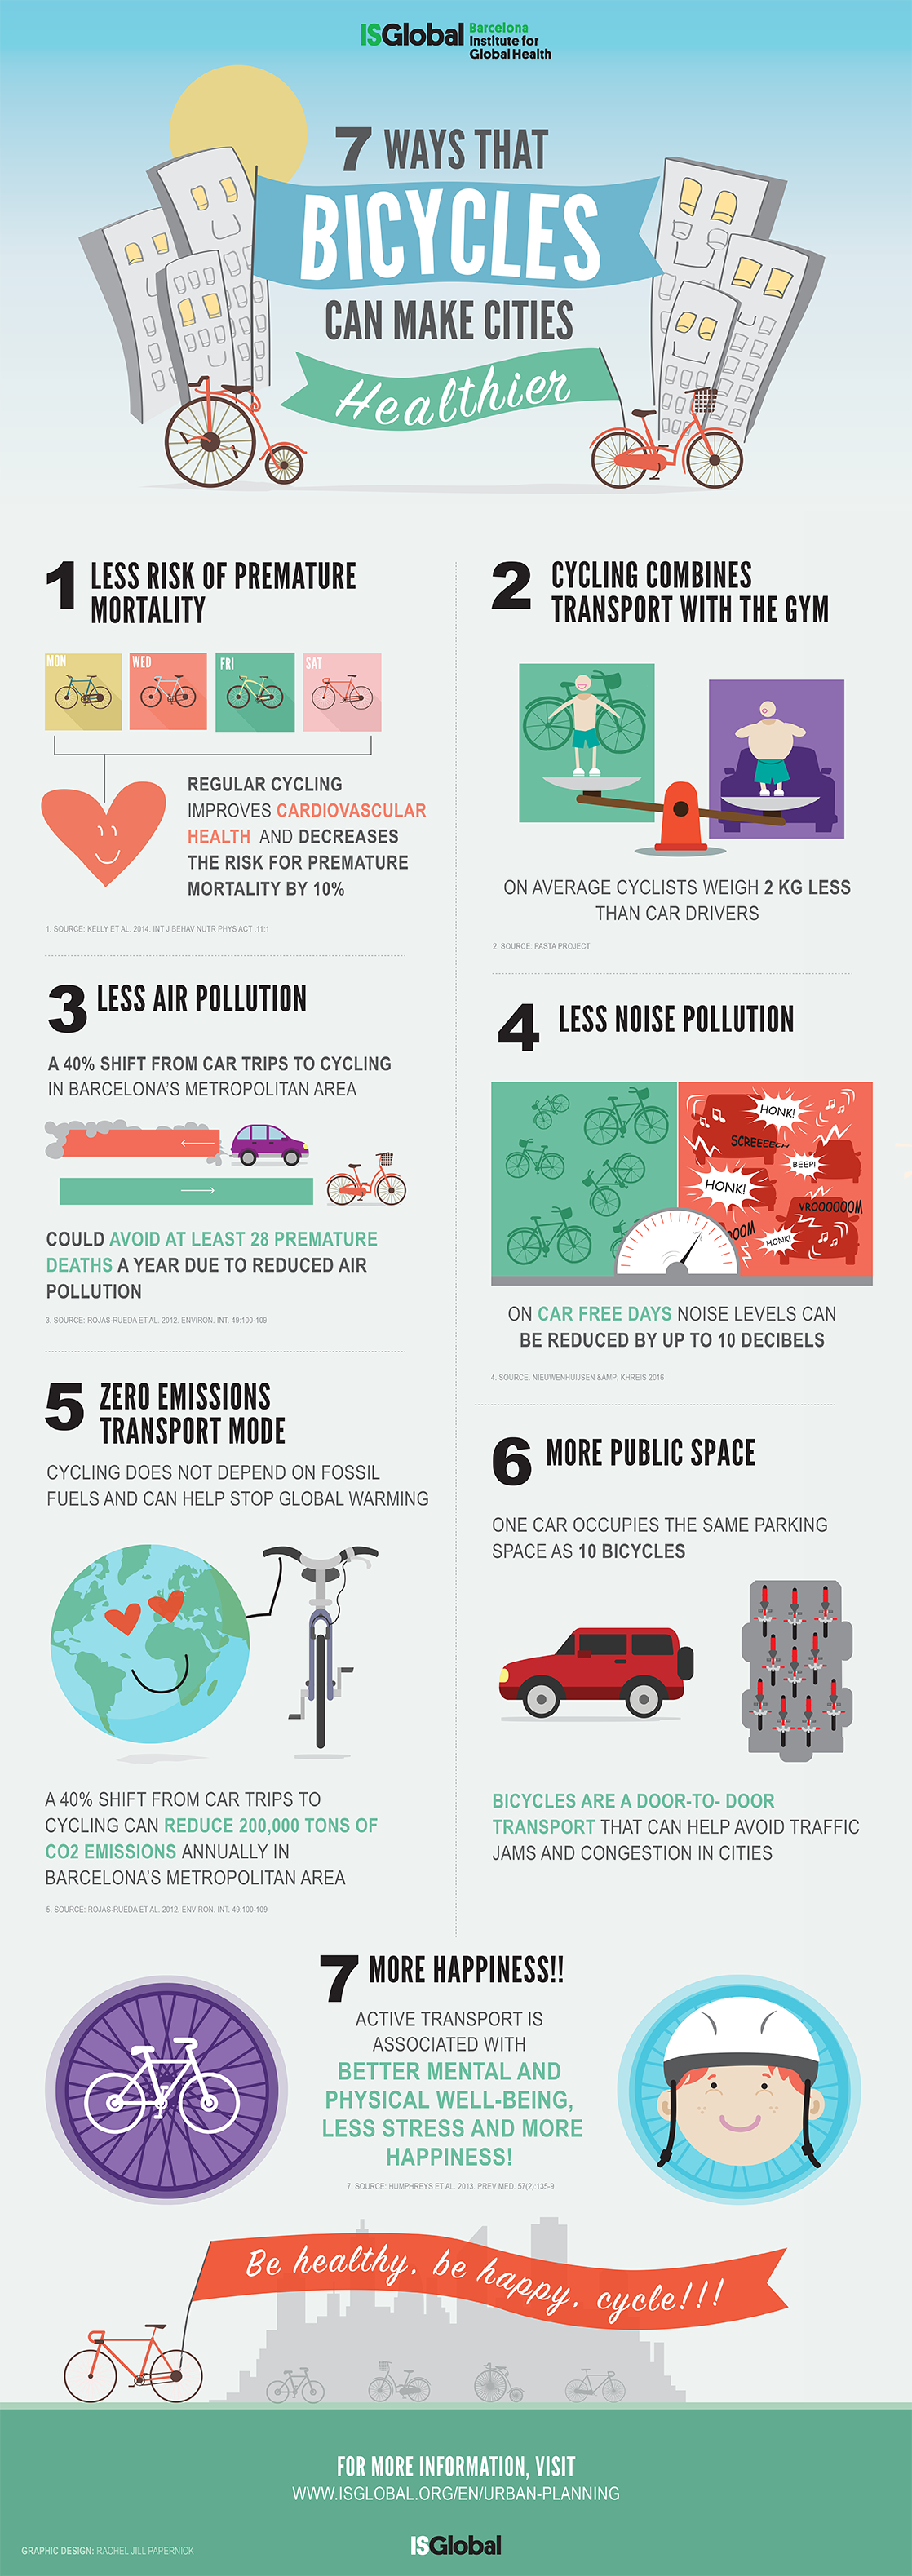 Infographic 7 Ways Bikes Make Cities Healthier